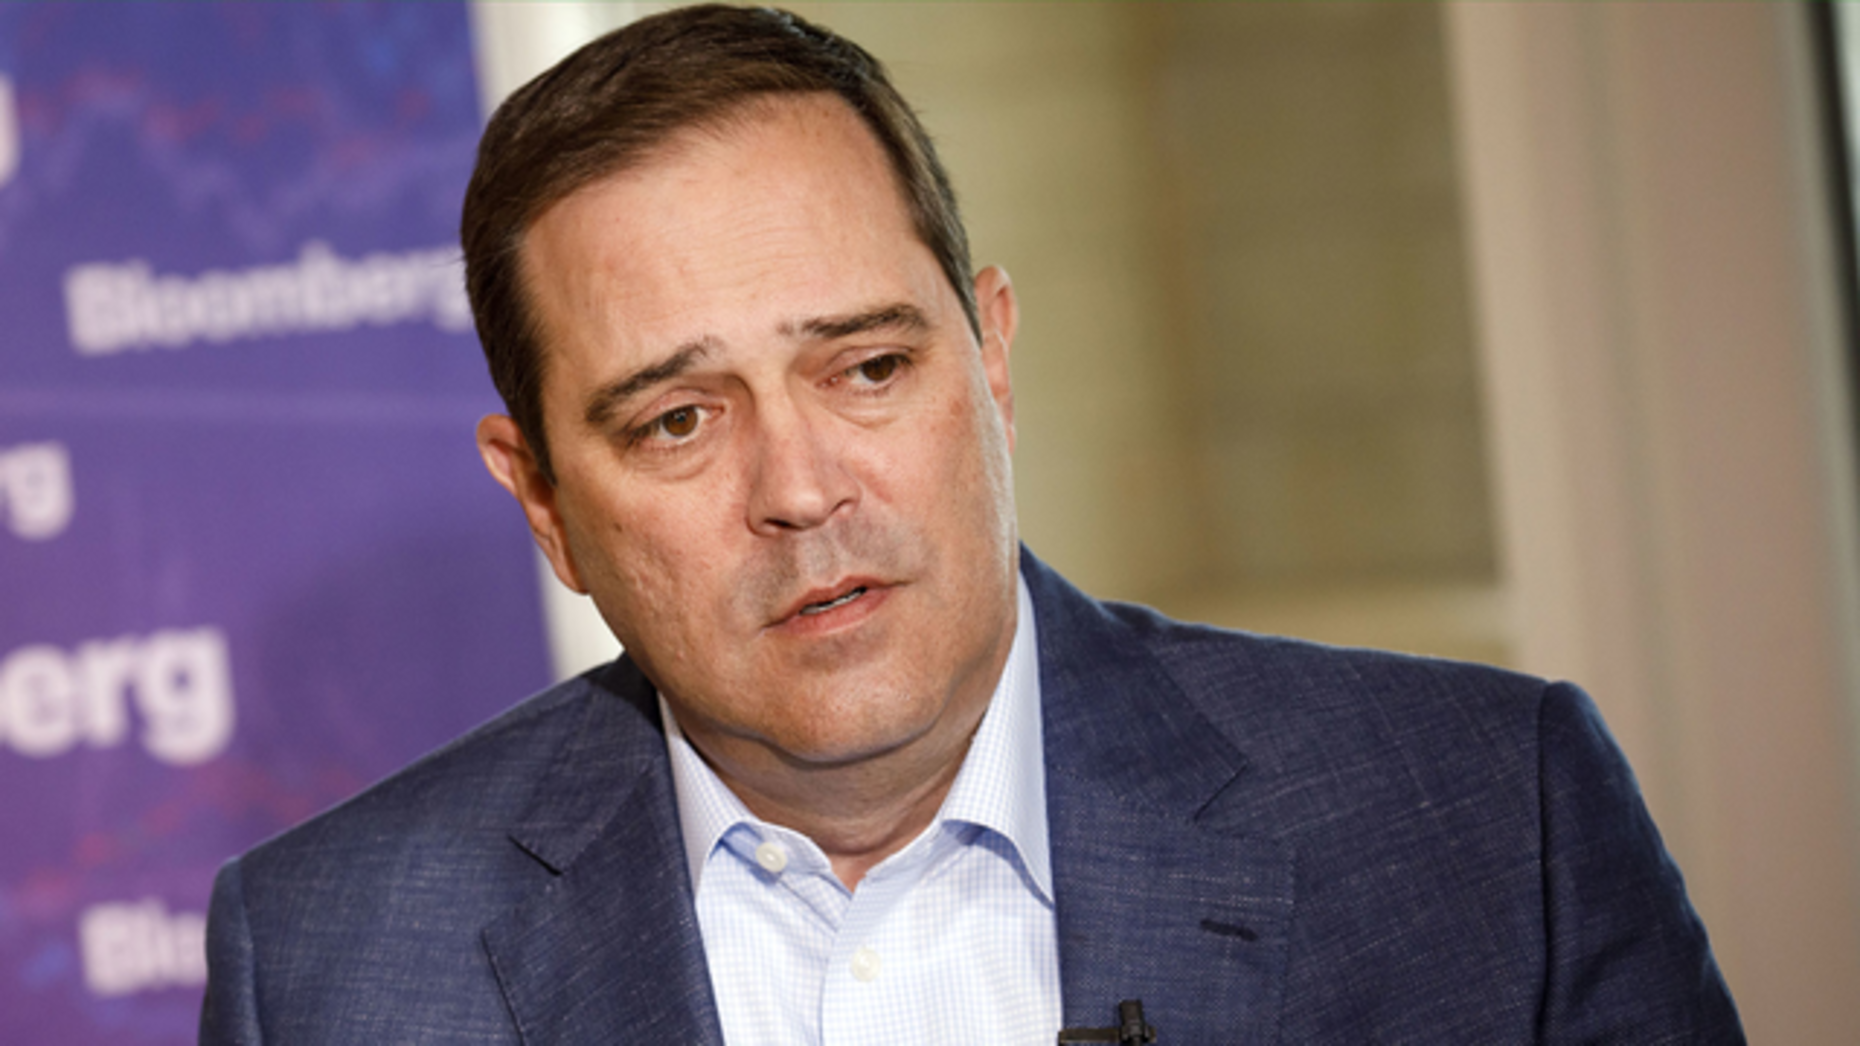 Cisco CEO Chuck Robbins. Photo by Bloomberg.